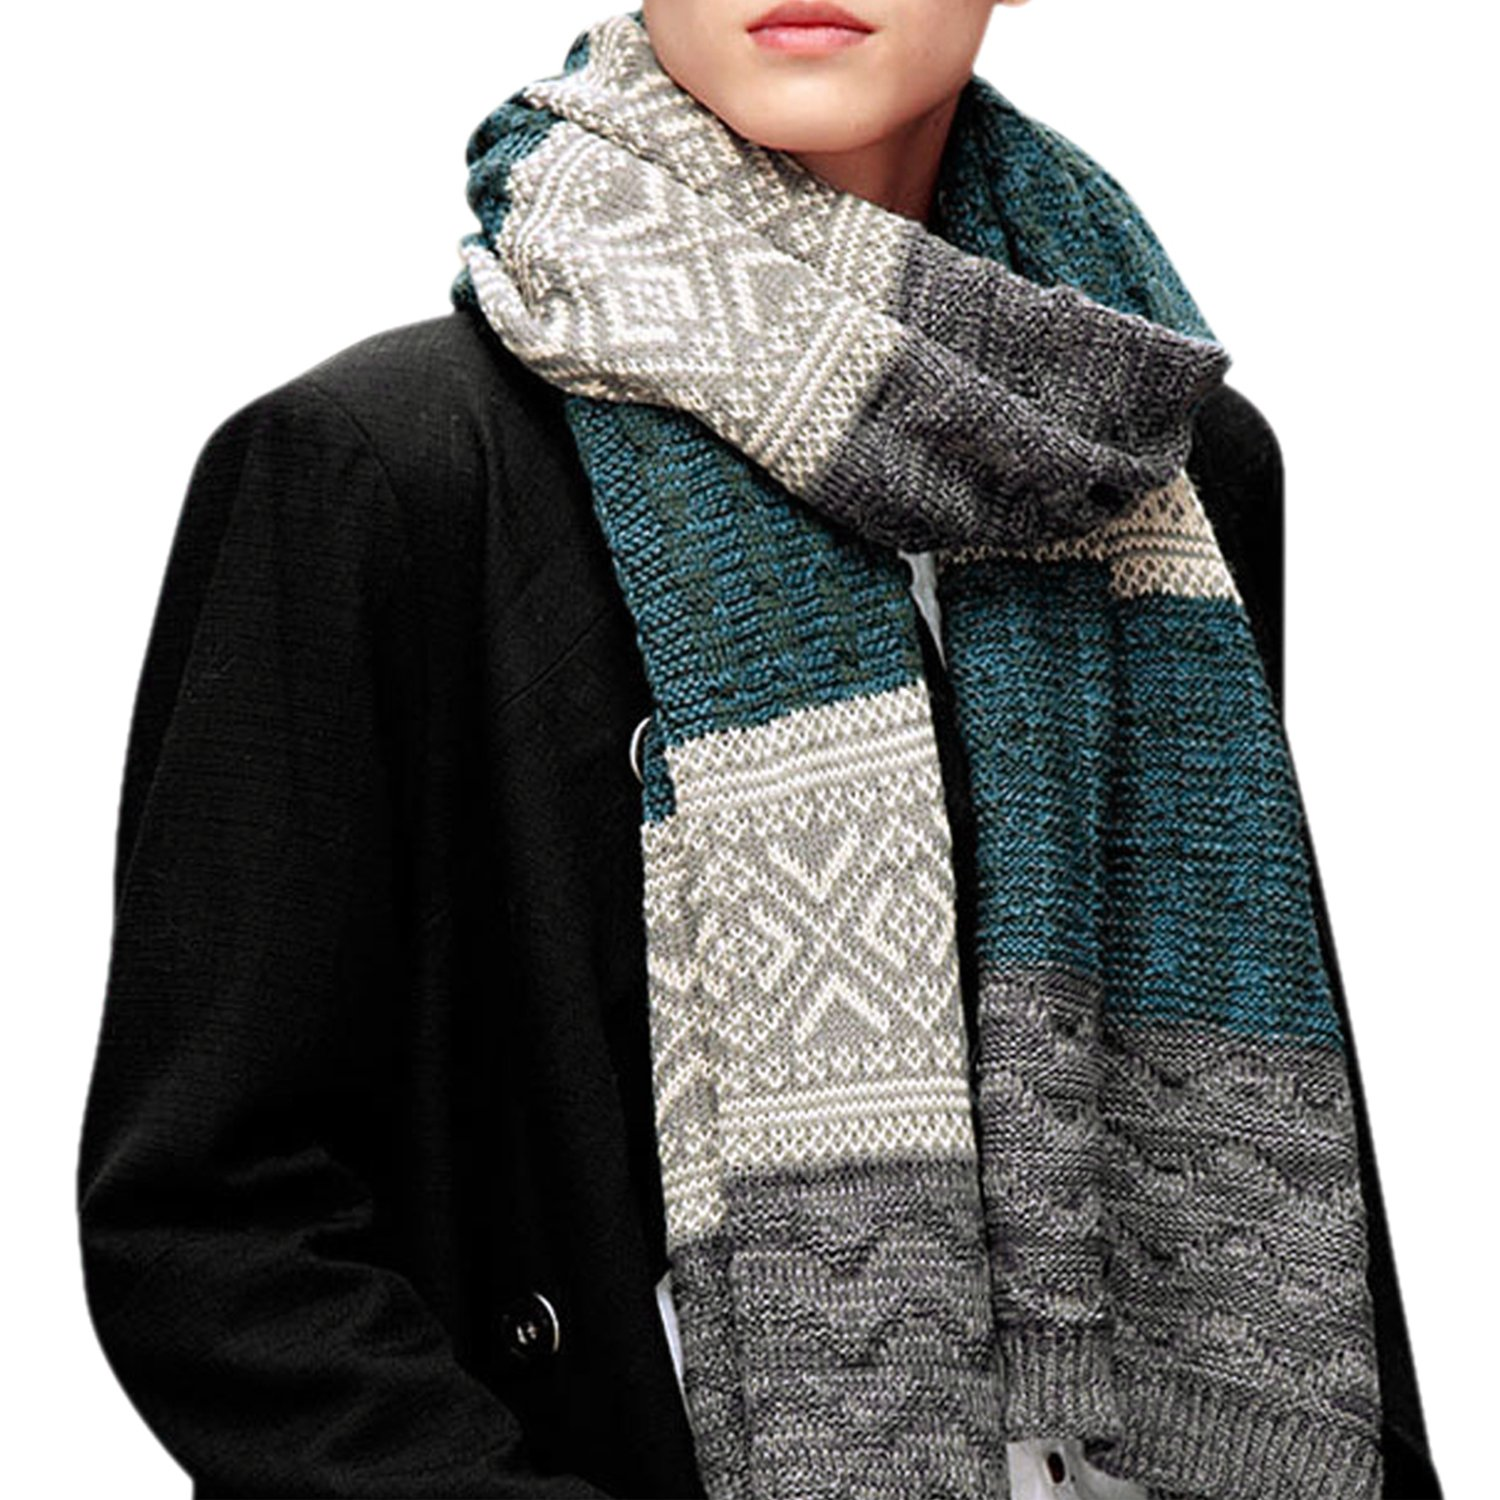 CHIC-CHIC Men's Retro Winter Warm Knitted Soft Thermal Scarf CH9020